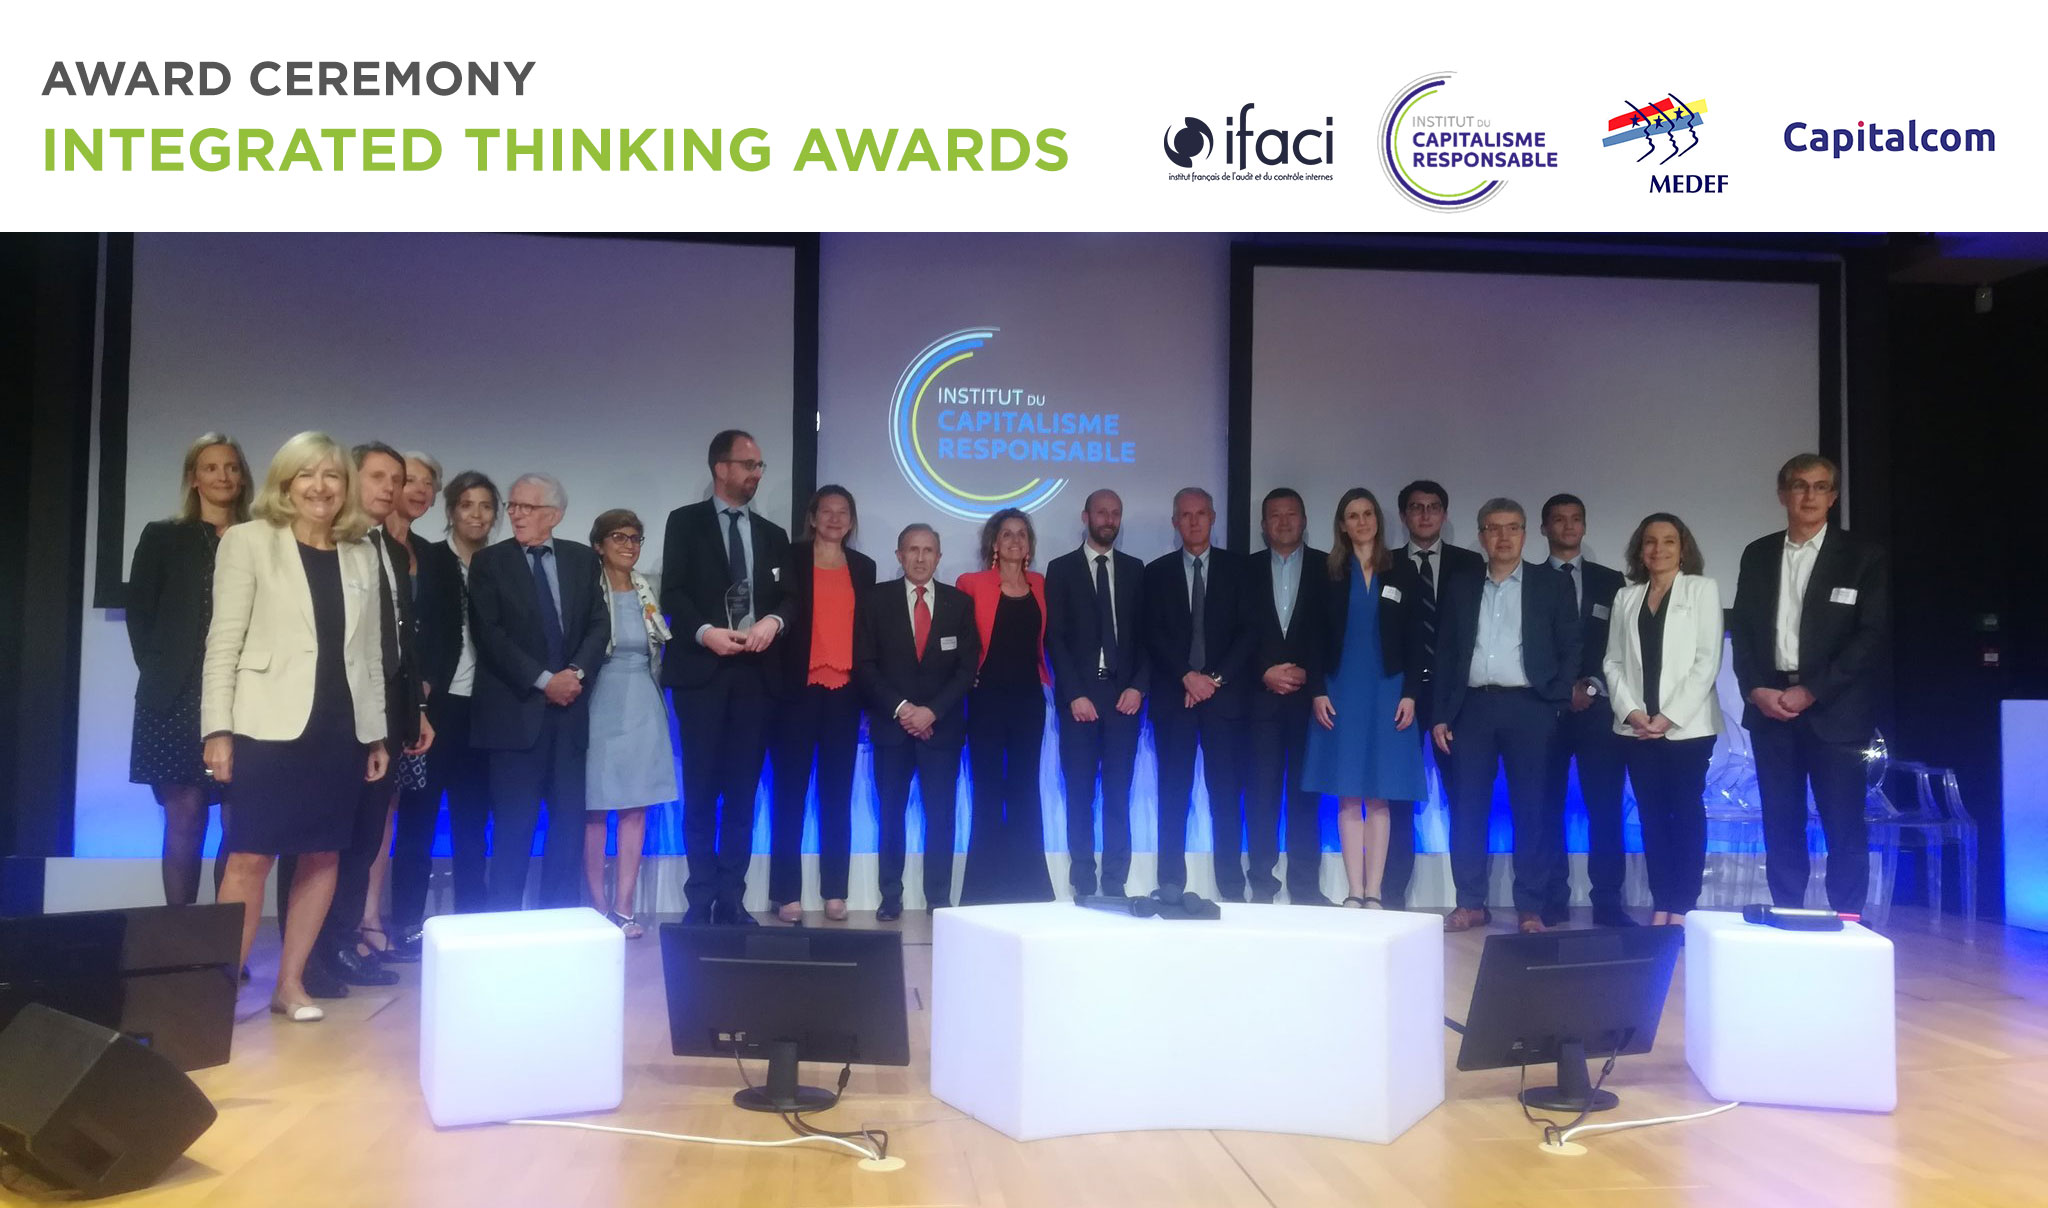 Cérémonie des Integrated Thinking Awards 2018